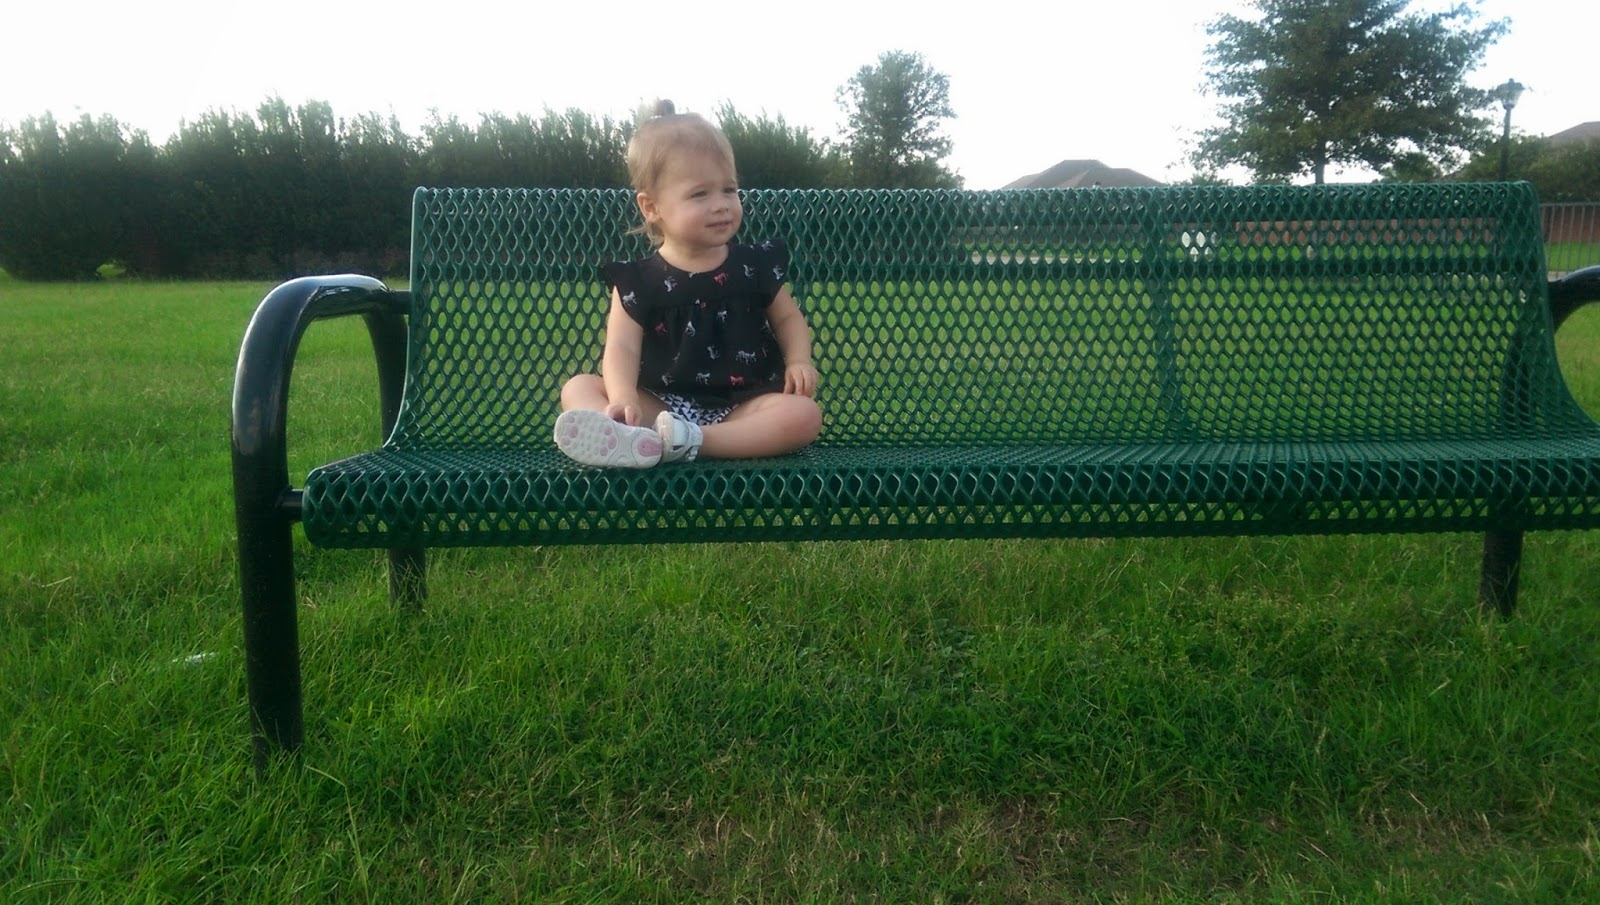 Toddler on park bench | Bubbles and Gold (www.bubblesandgold.com)